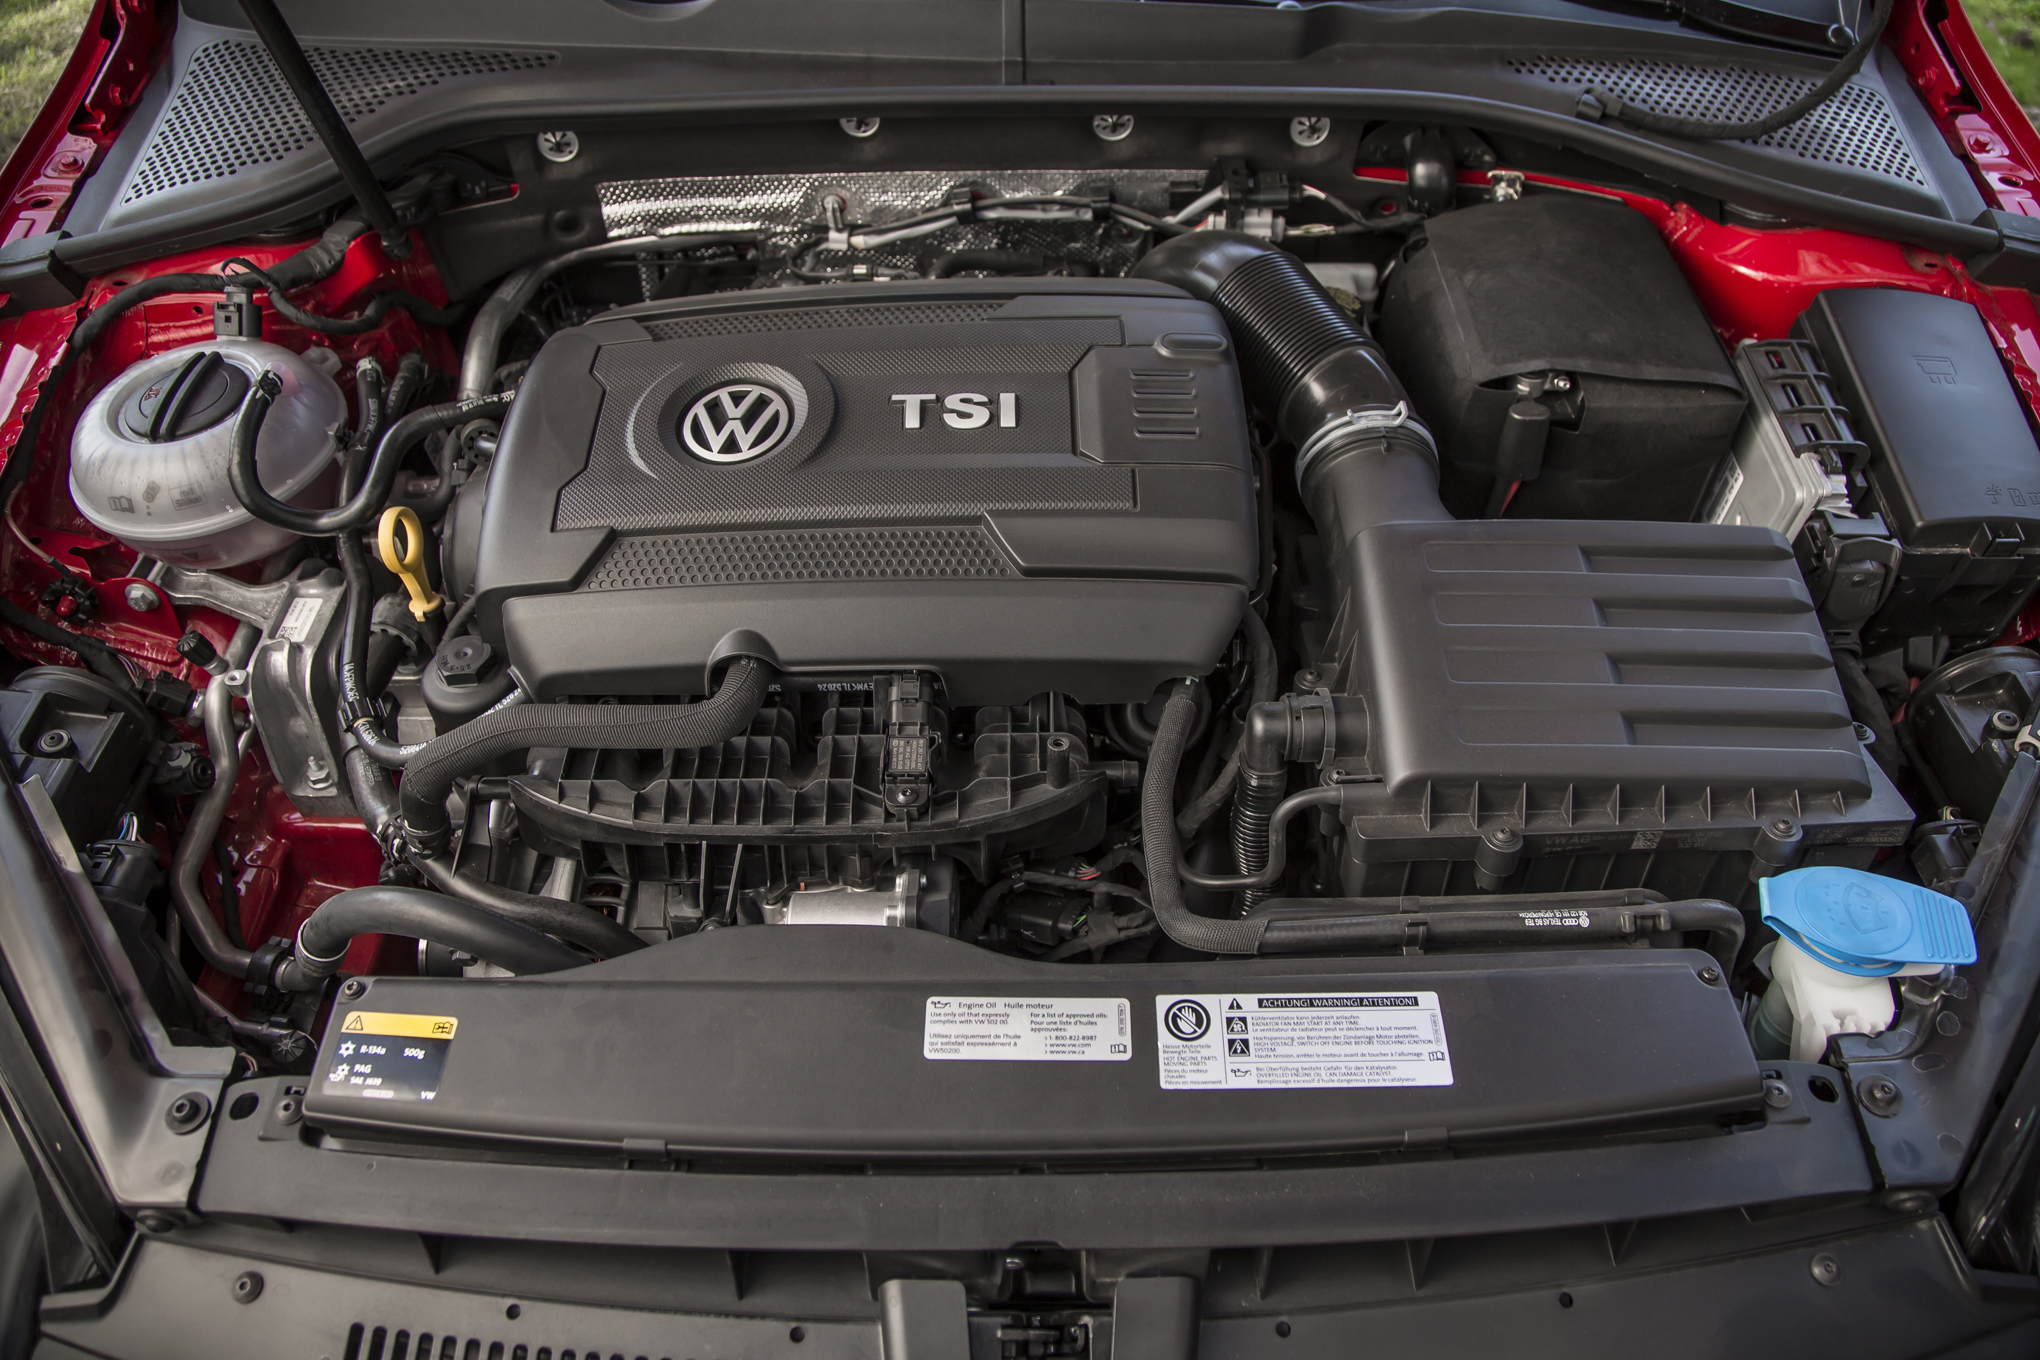 2015 Volkswagen Golf Gti Engine Photo (Photo 45 of 55)